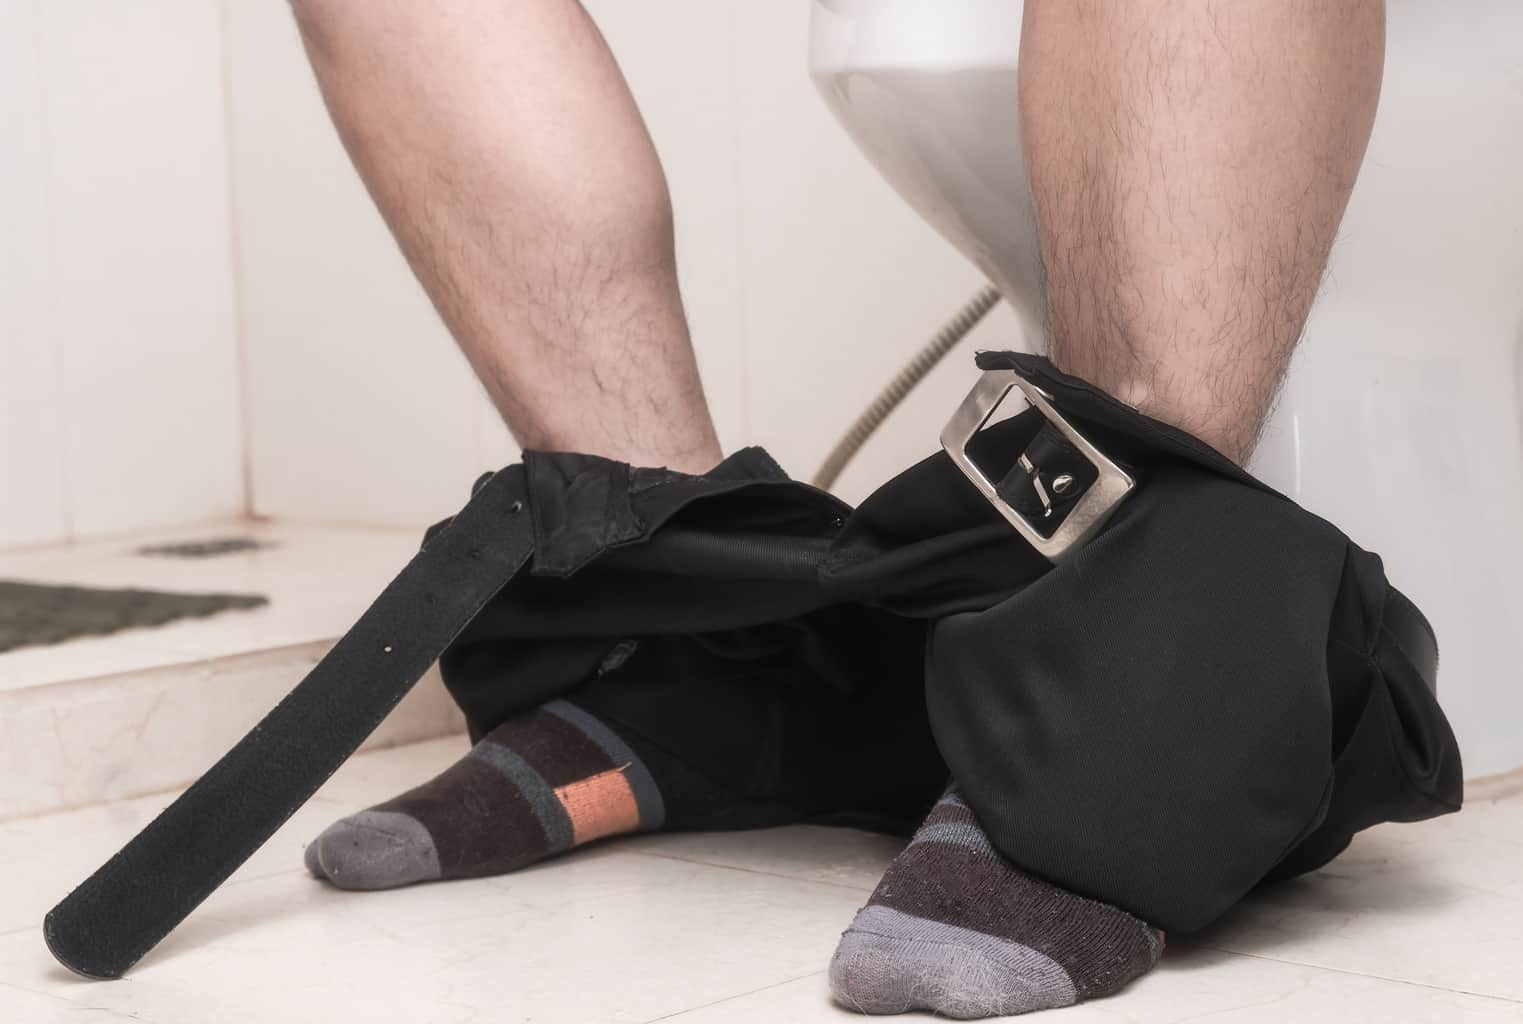 How to remove 1.73 pounds of waste from you colon by 8PM tonight